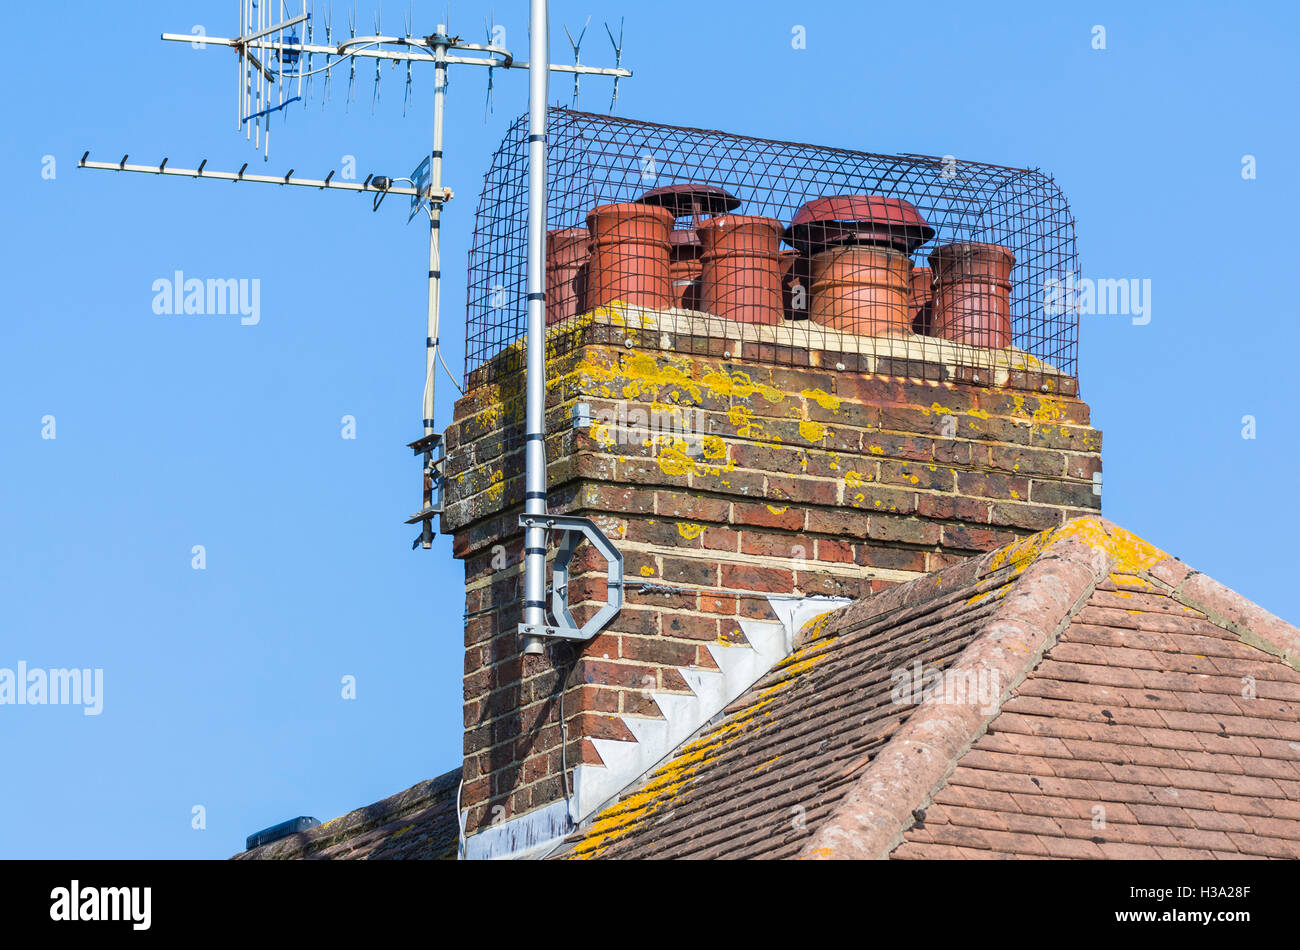 Wire balloon chimney cowl bird guard over an old red brick chimney stack in the UK. - Stock Image